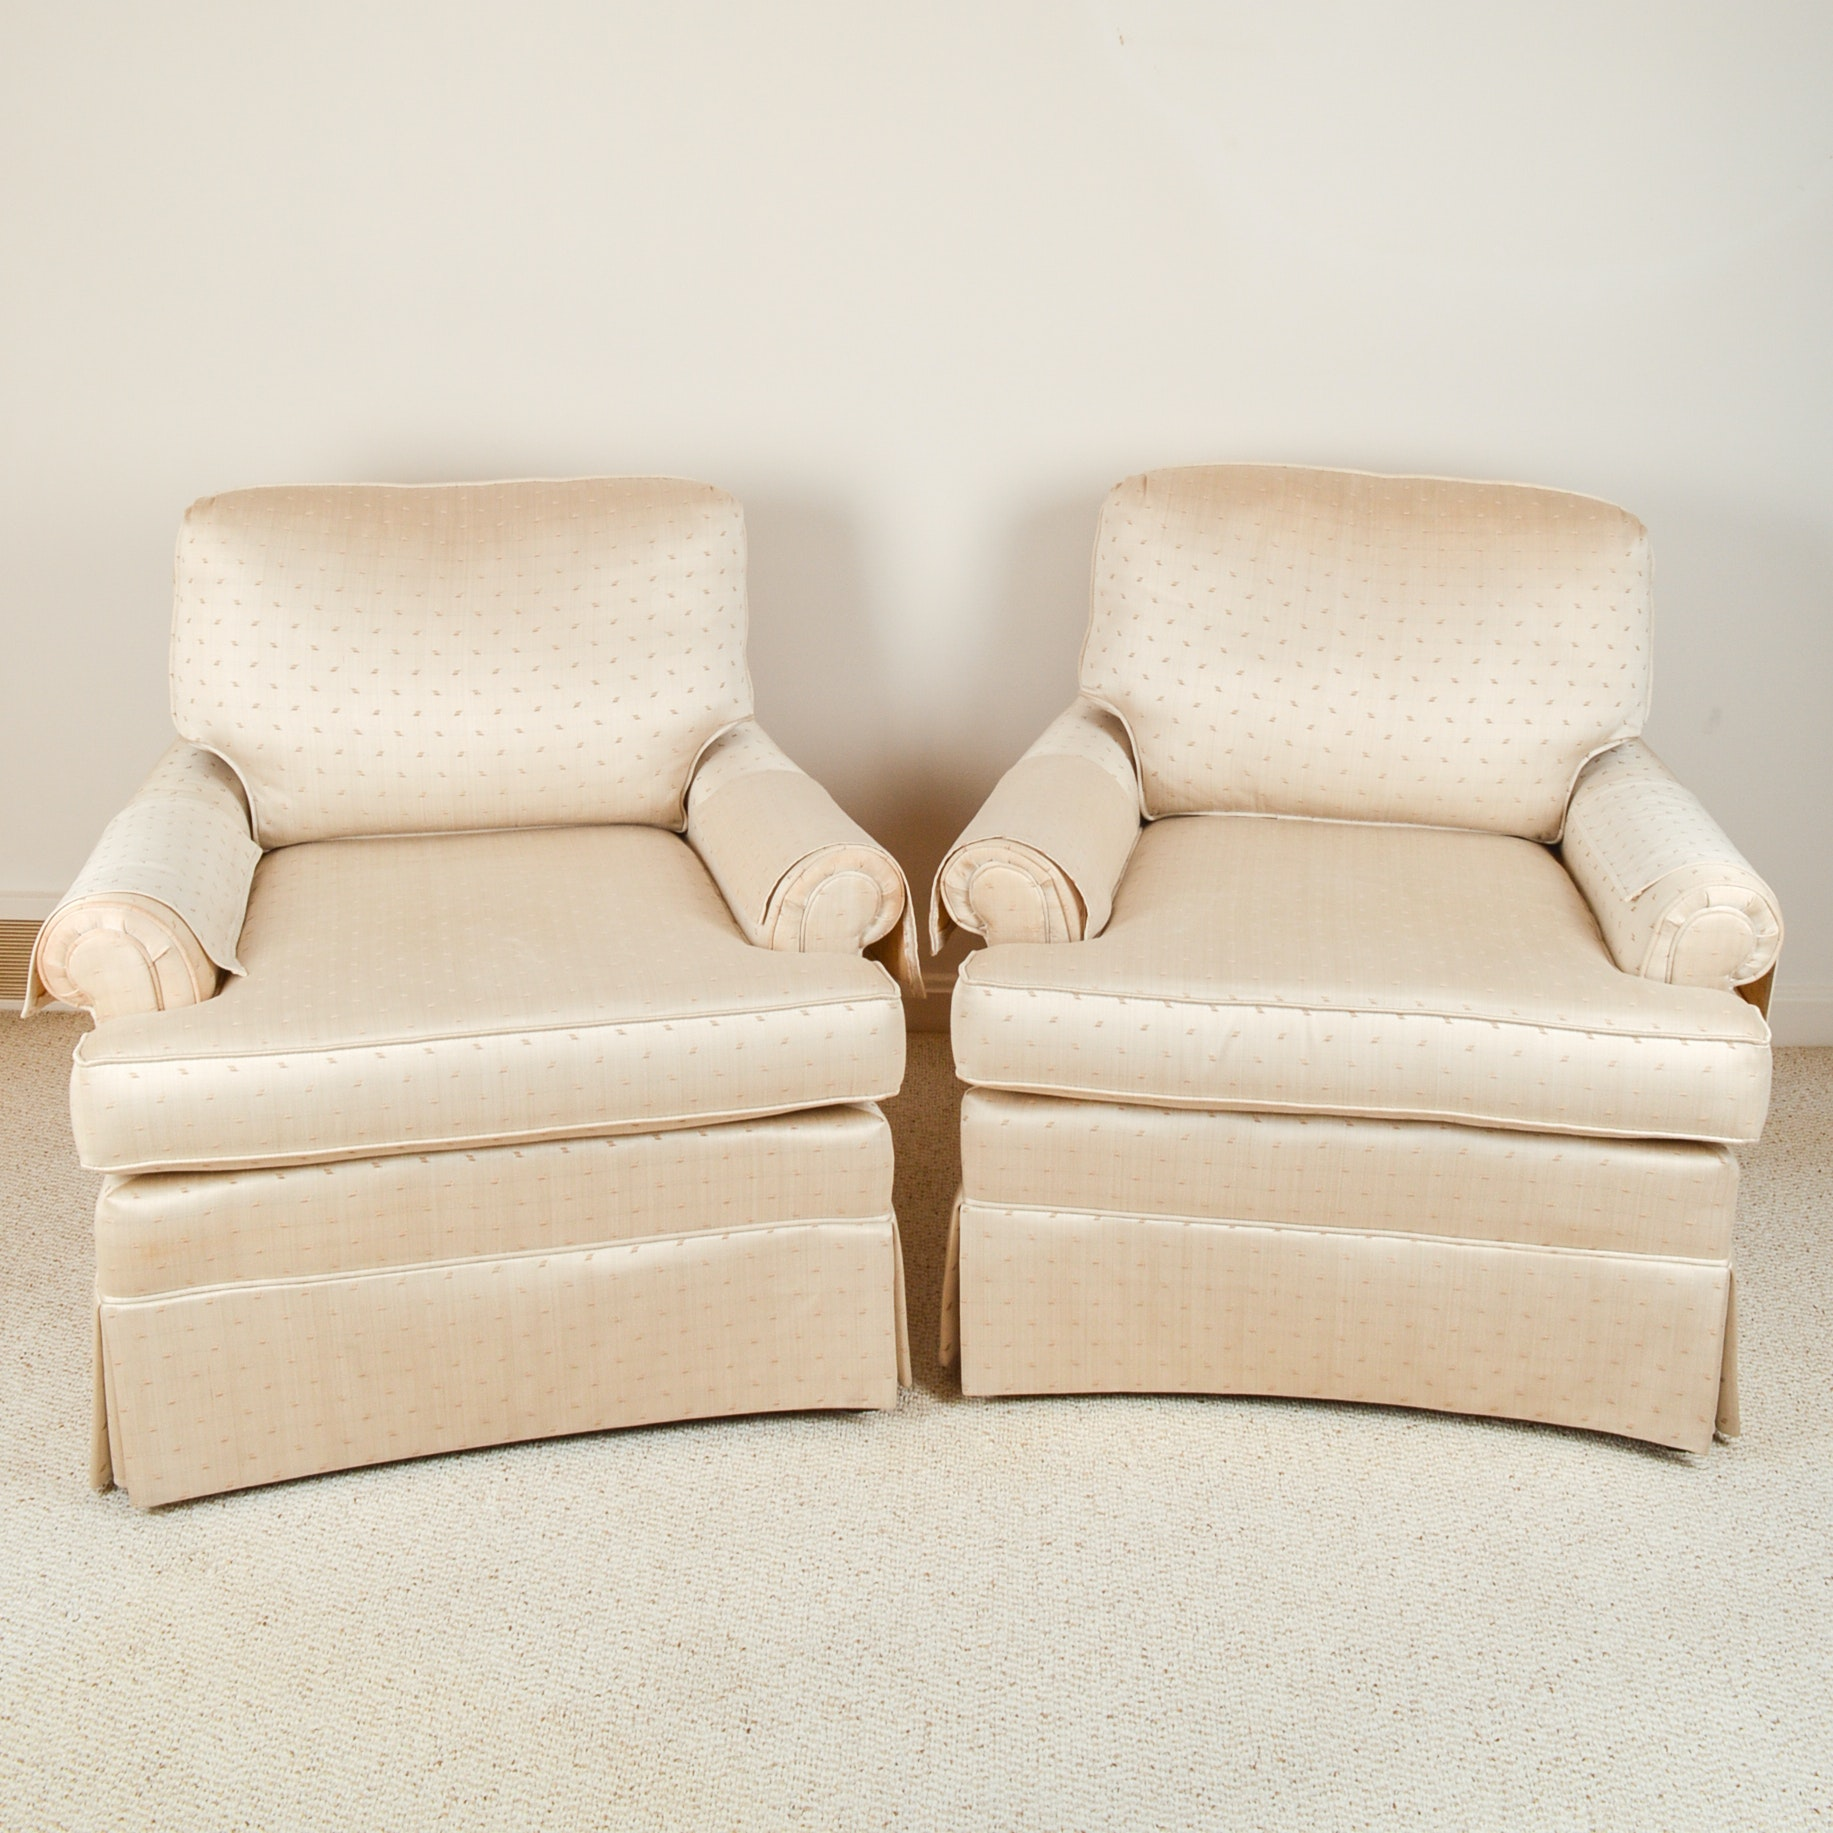 Pair of Upholstered Club Chairs By Lazarus Furniture